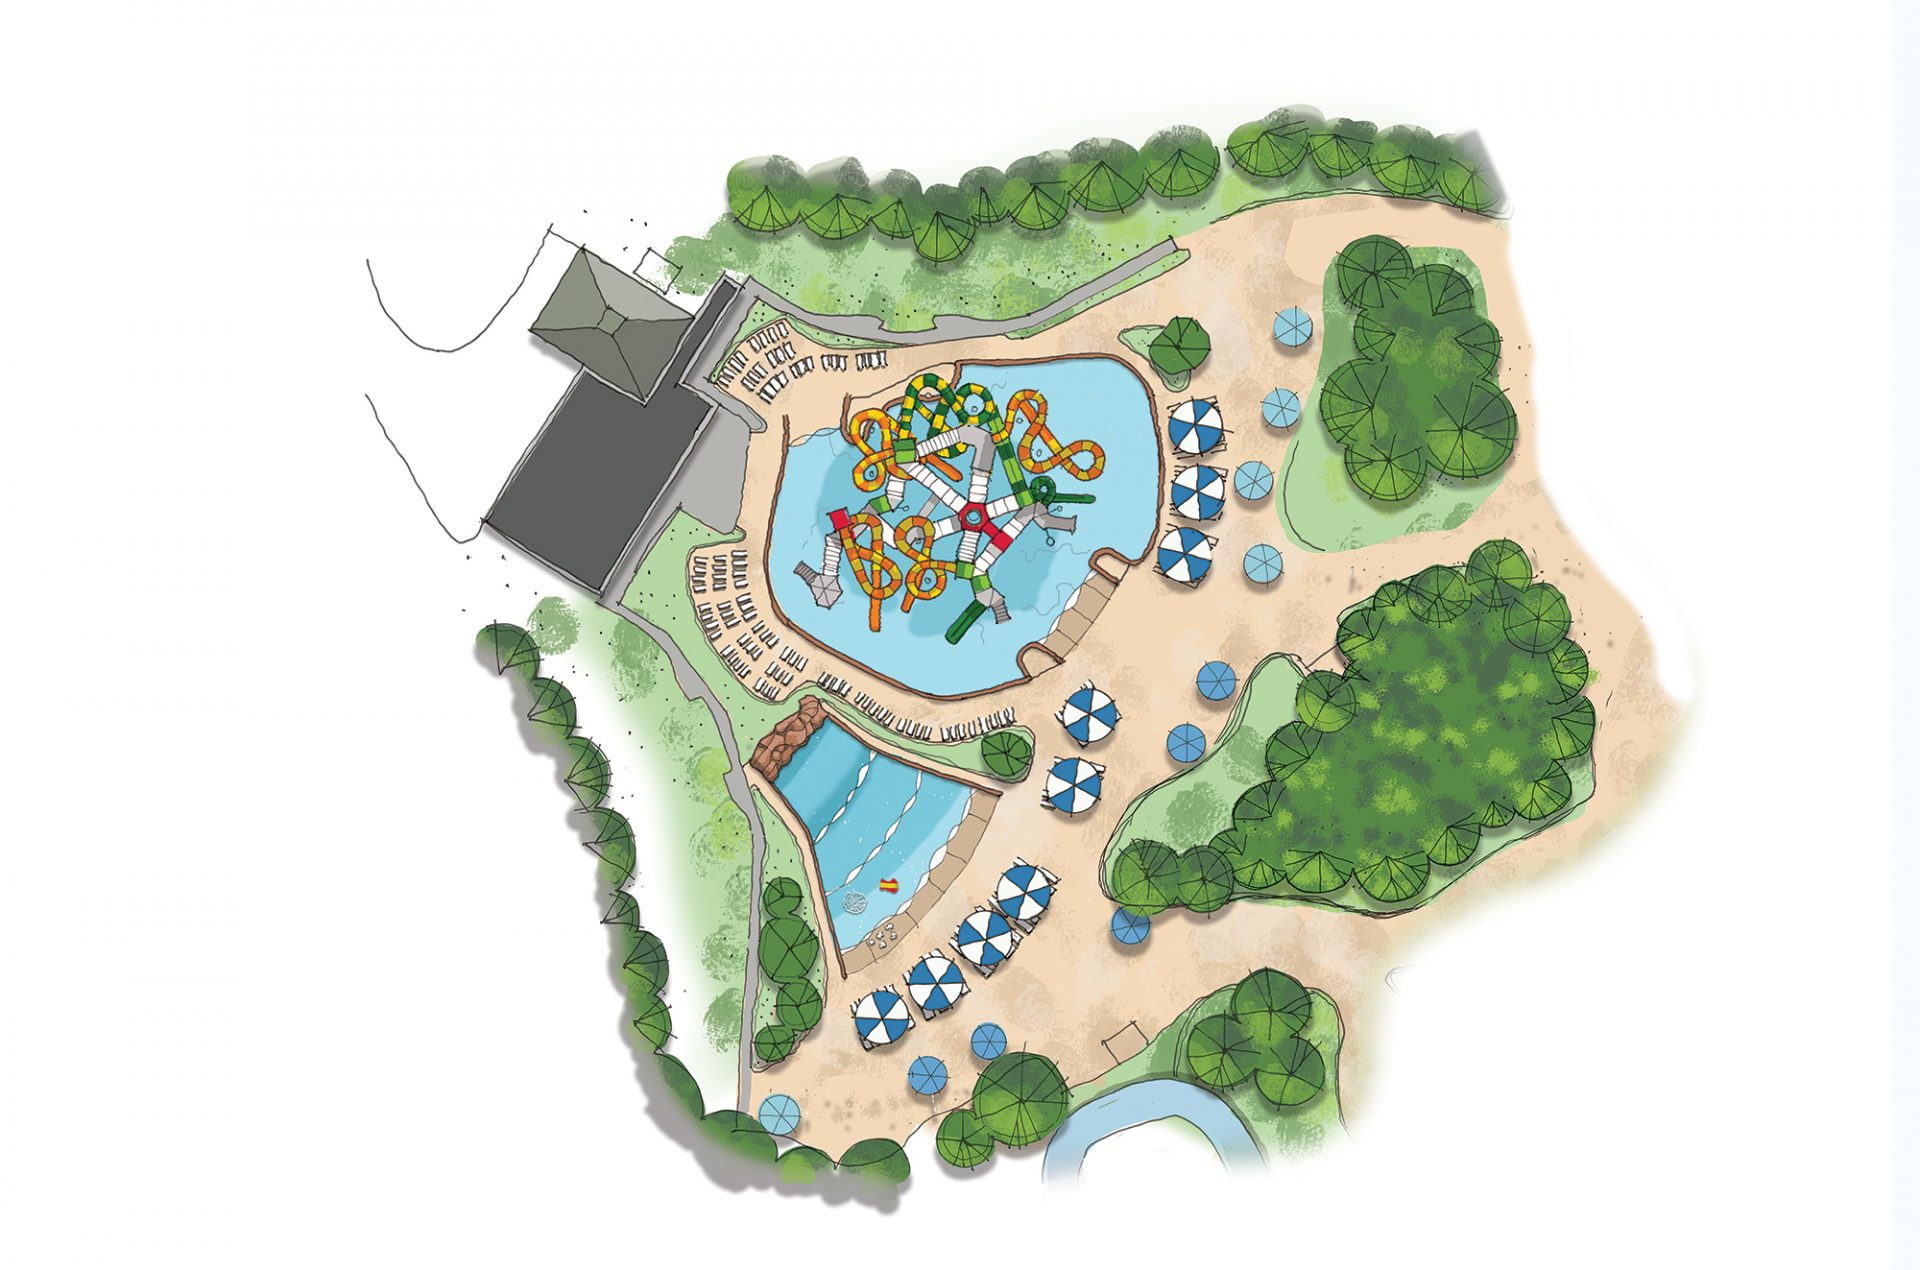 Kings Dominion concept drawing expansion renovation